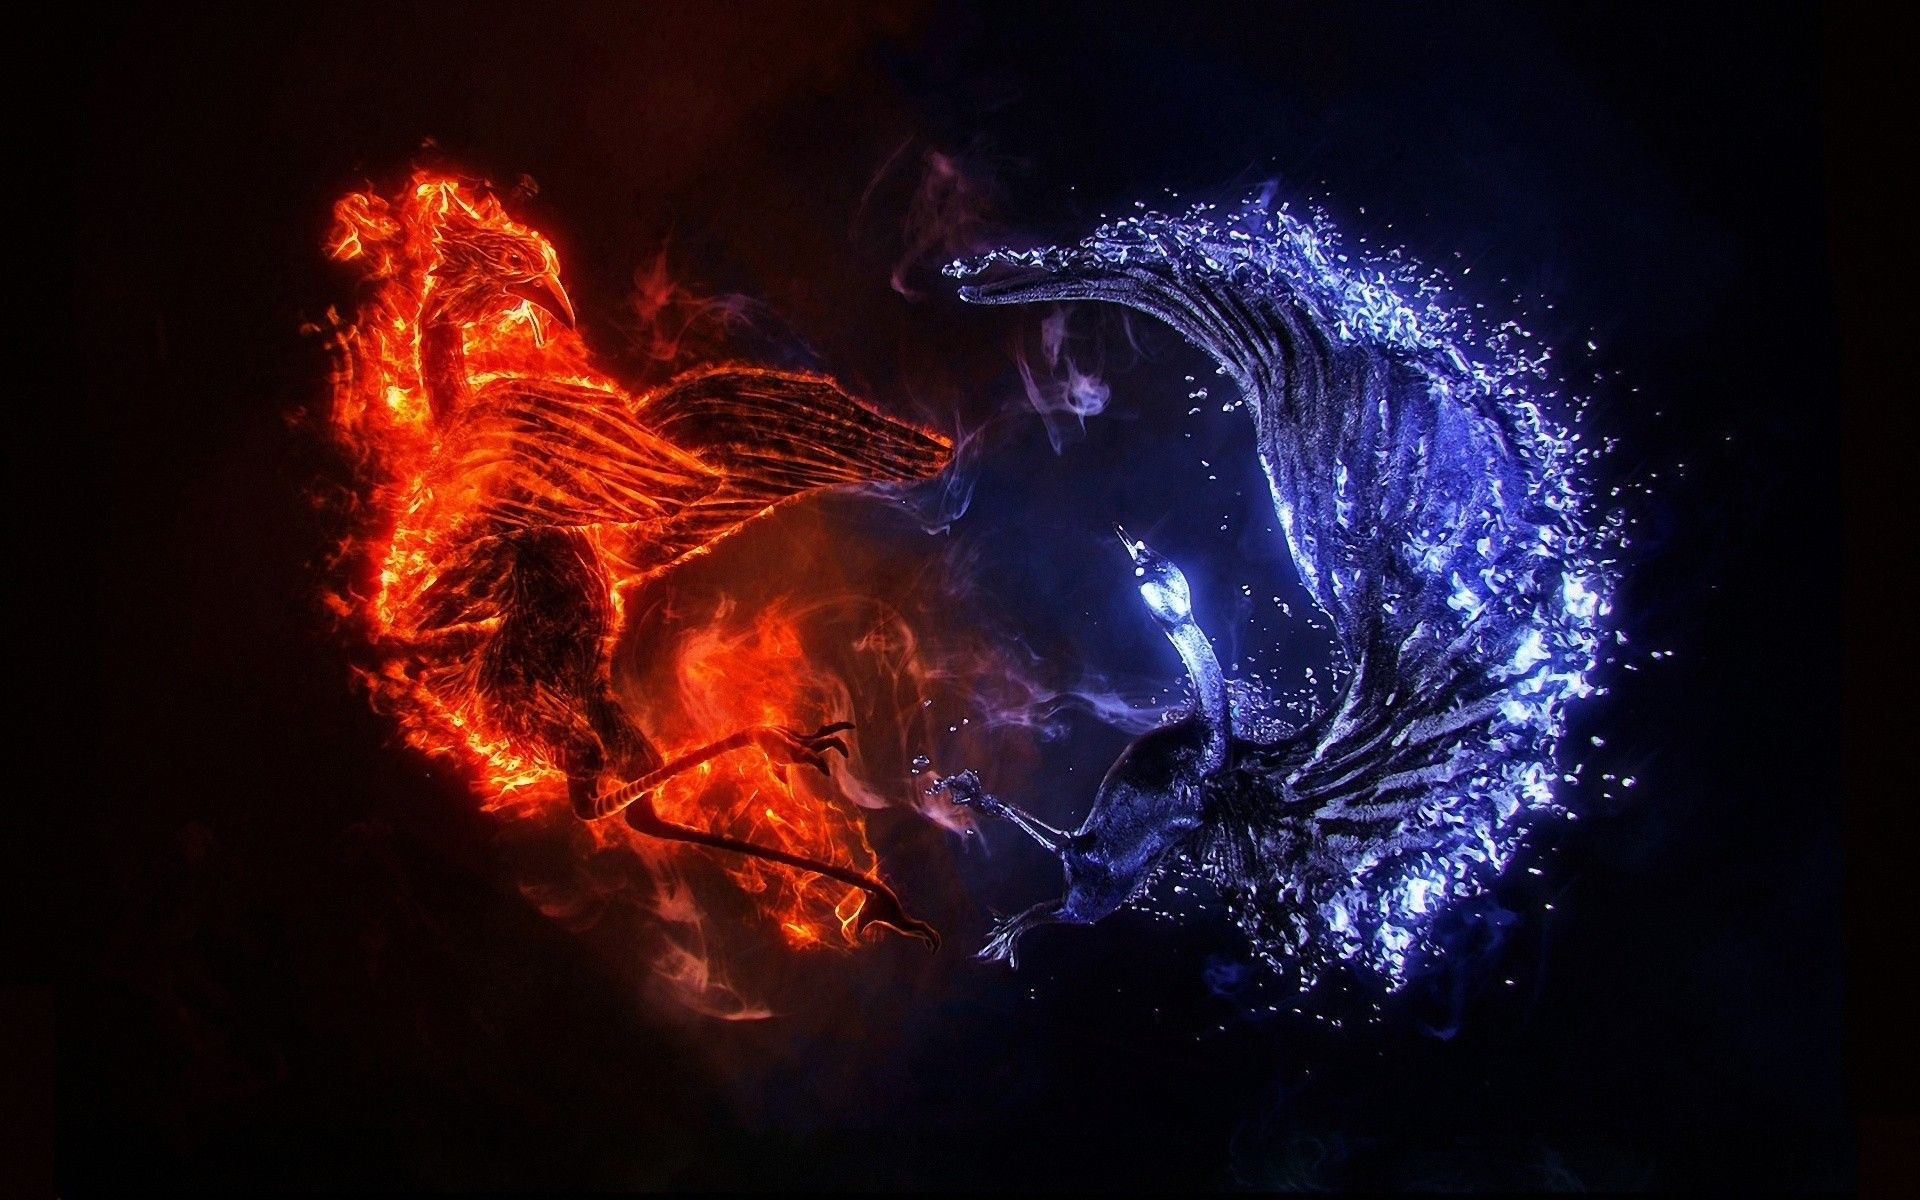 Ice Phoenix Fire Wide Desktop Background Wallpaper Free